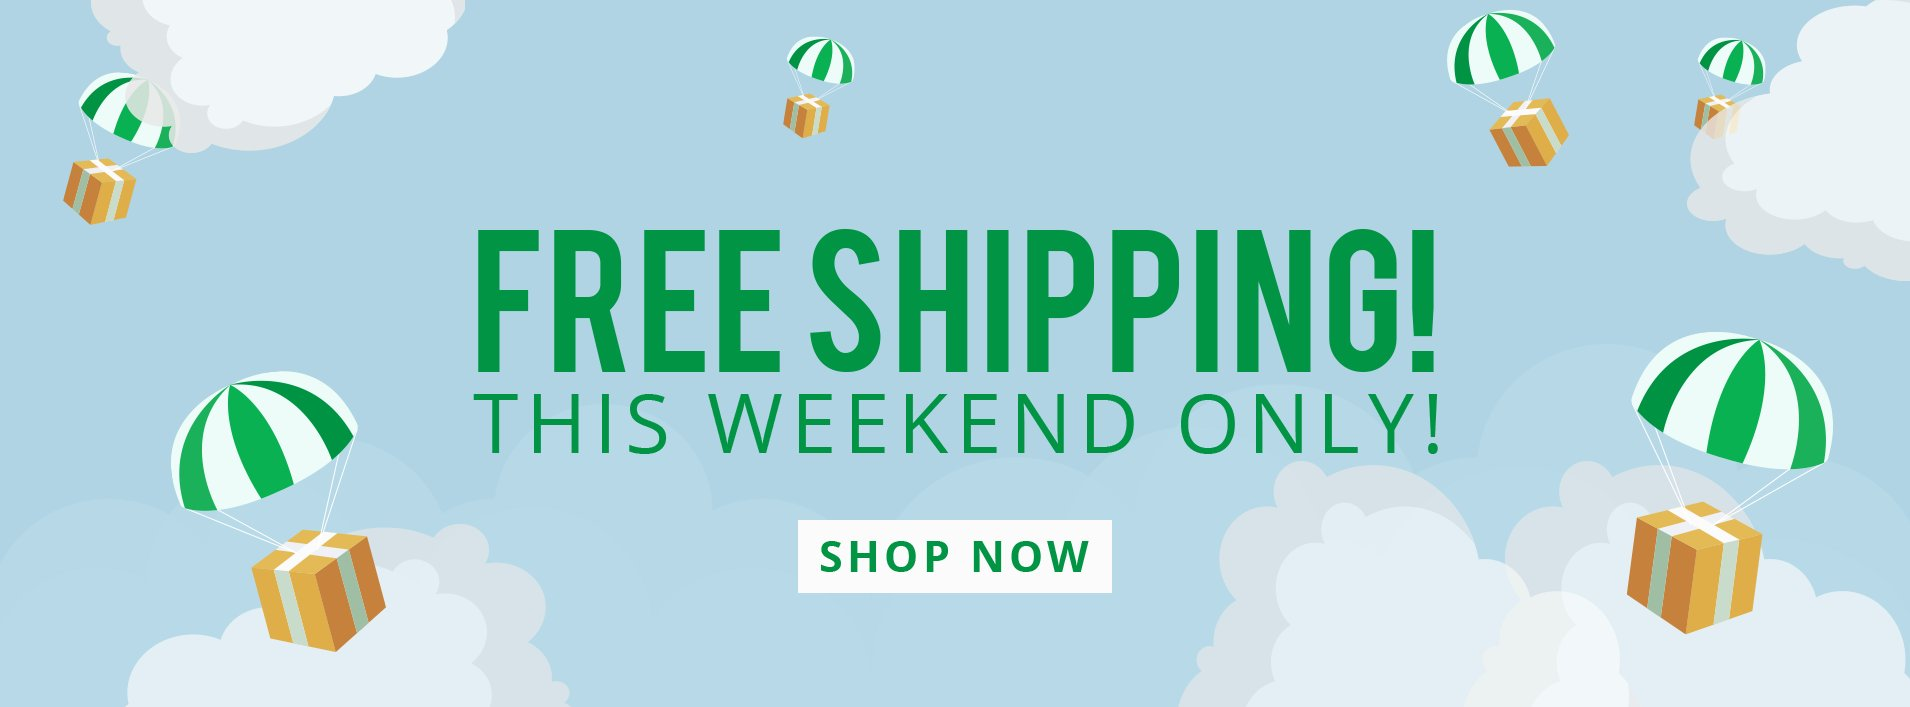 Use code: FREESHIPPING to receive FREE shipping!